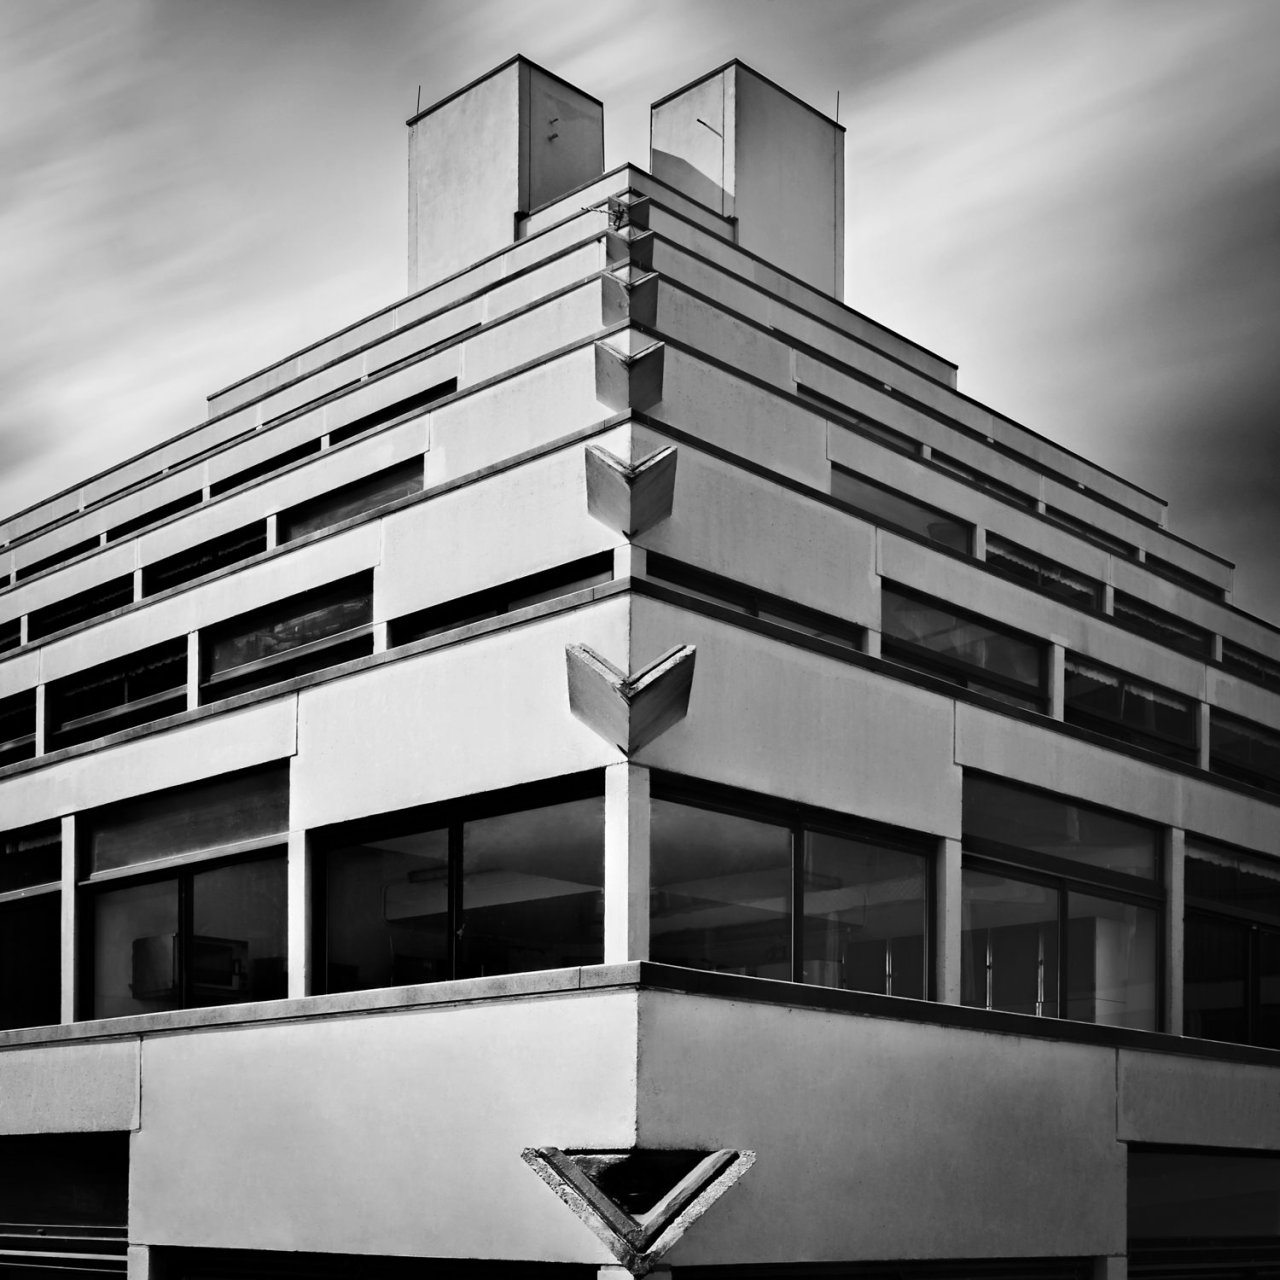 Close up architectural monochrome image of UEA Ziggurat